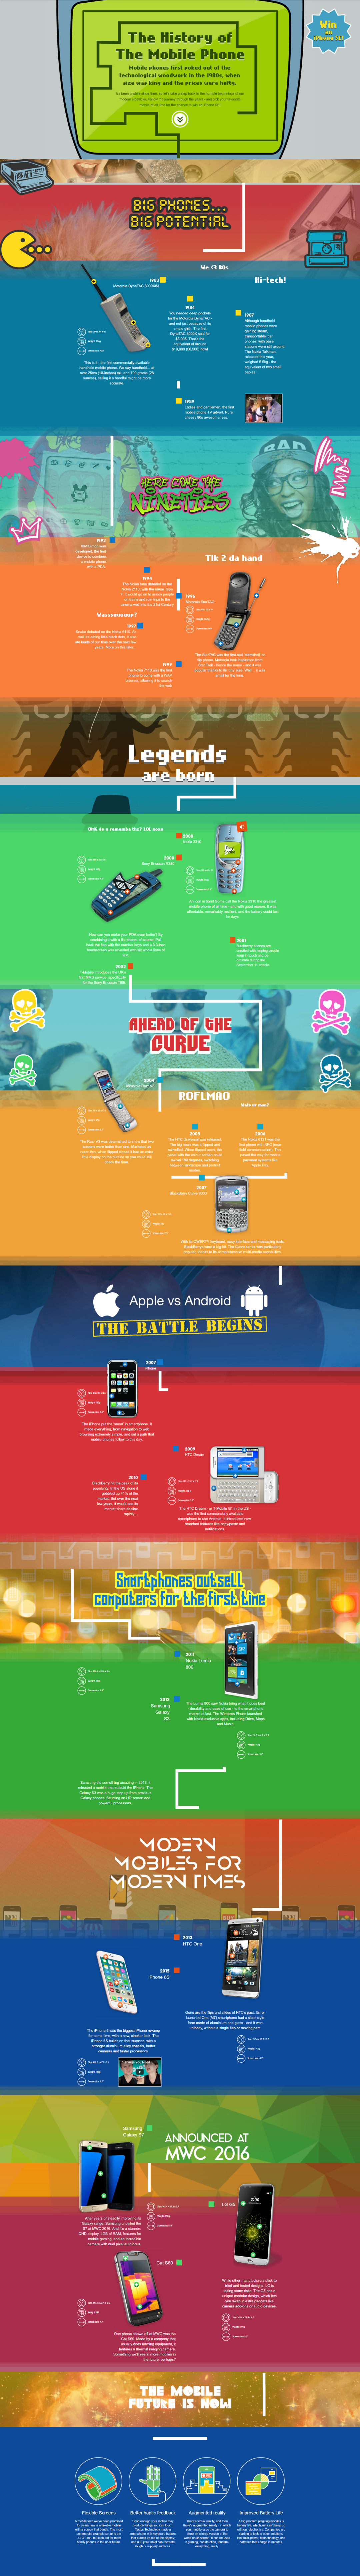 The-History-of-Mobile-Phones